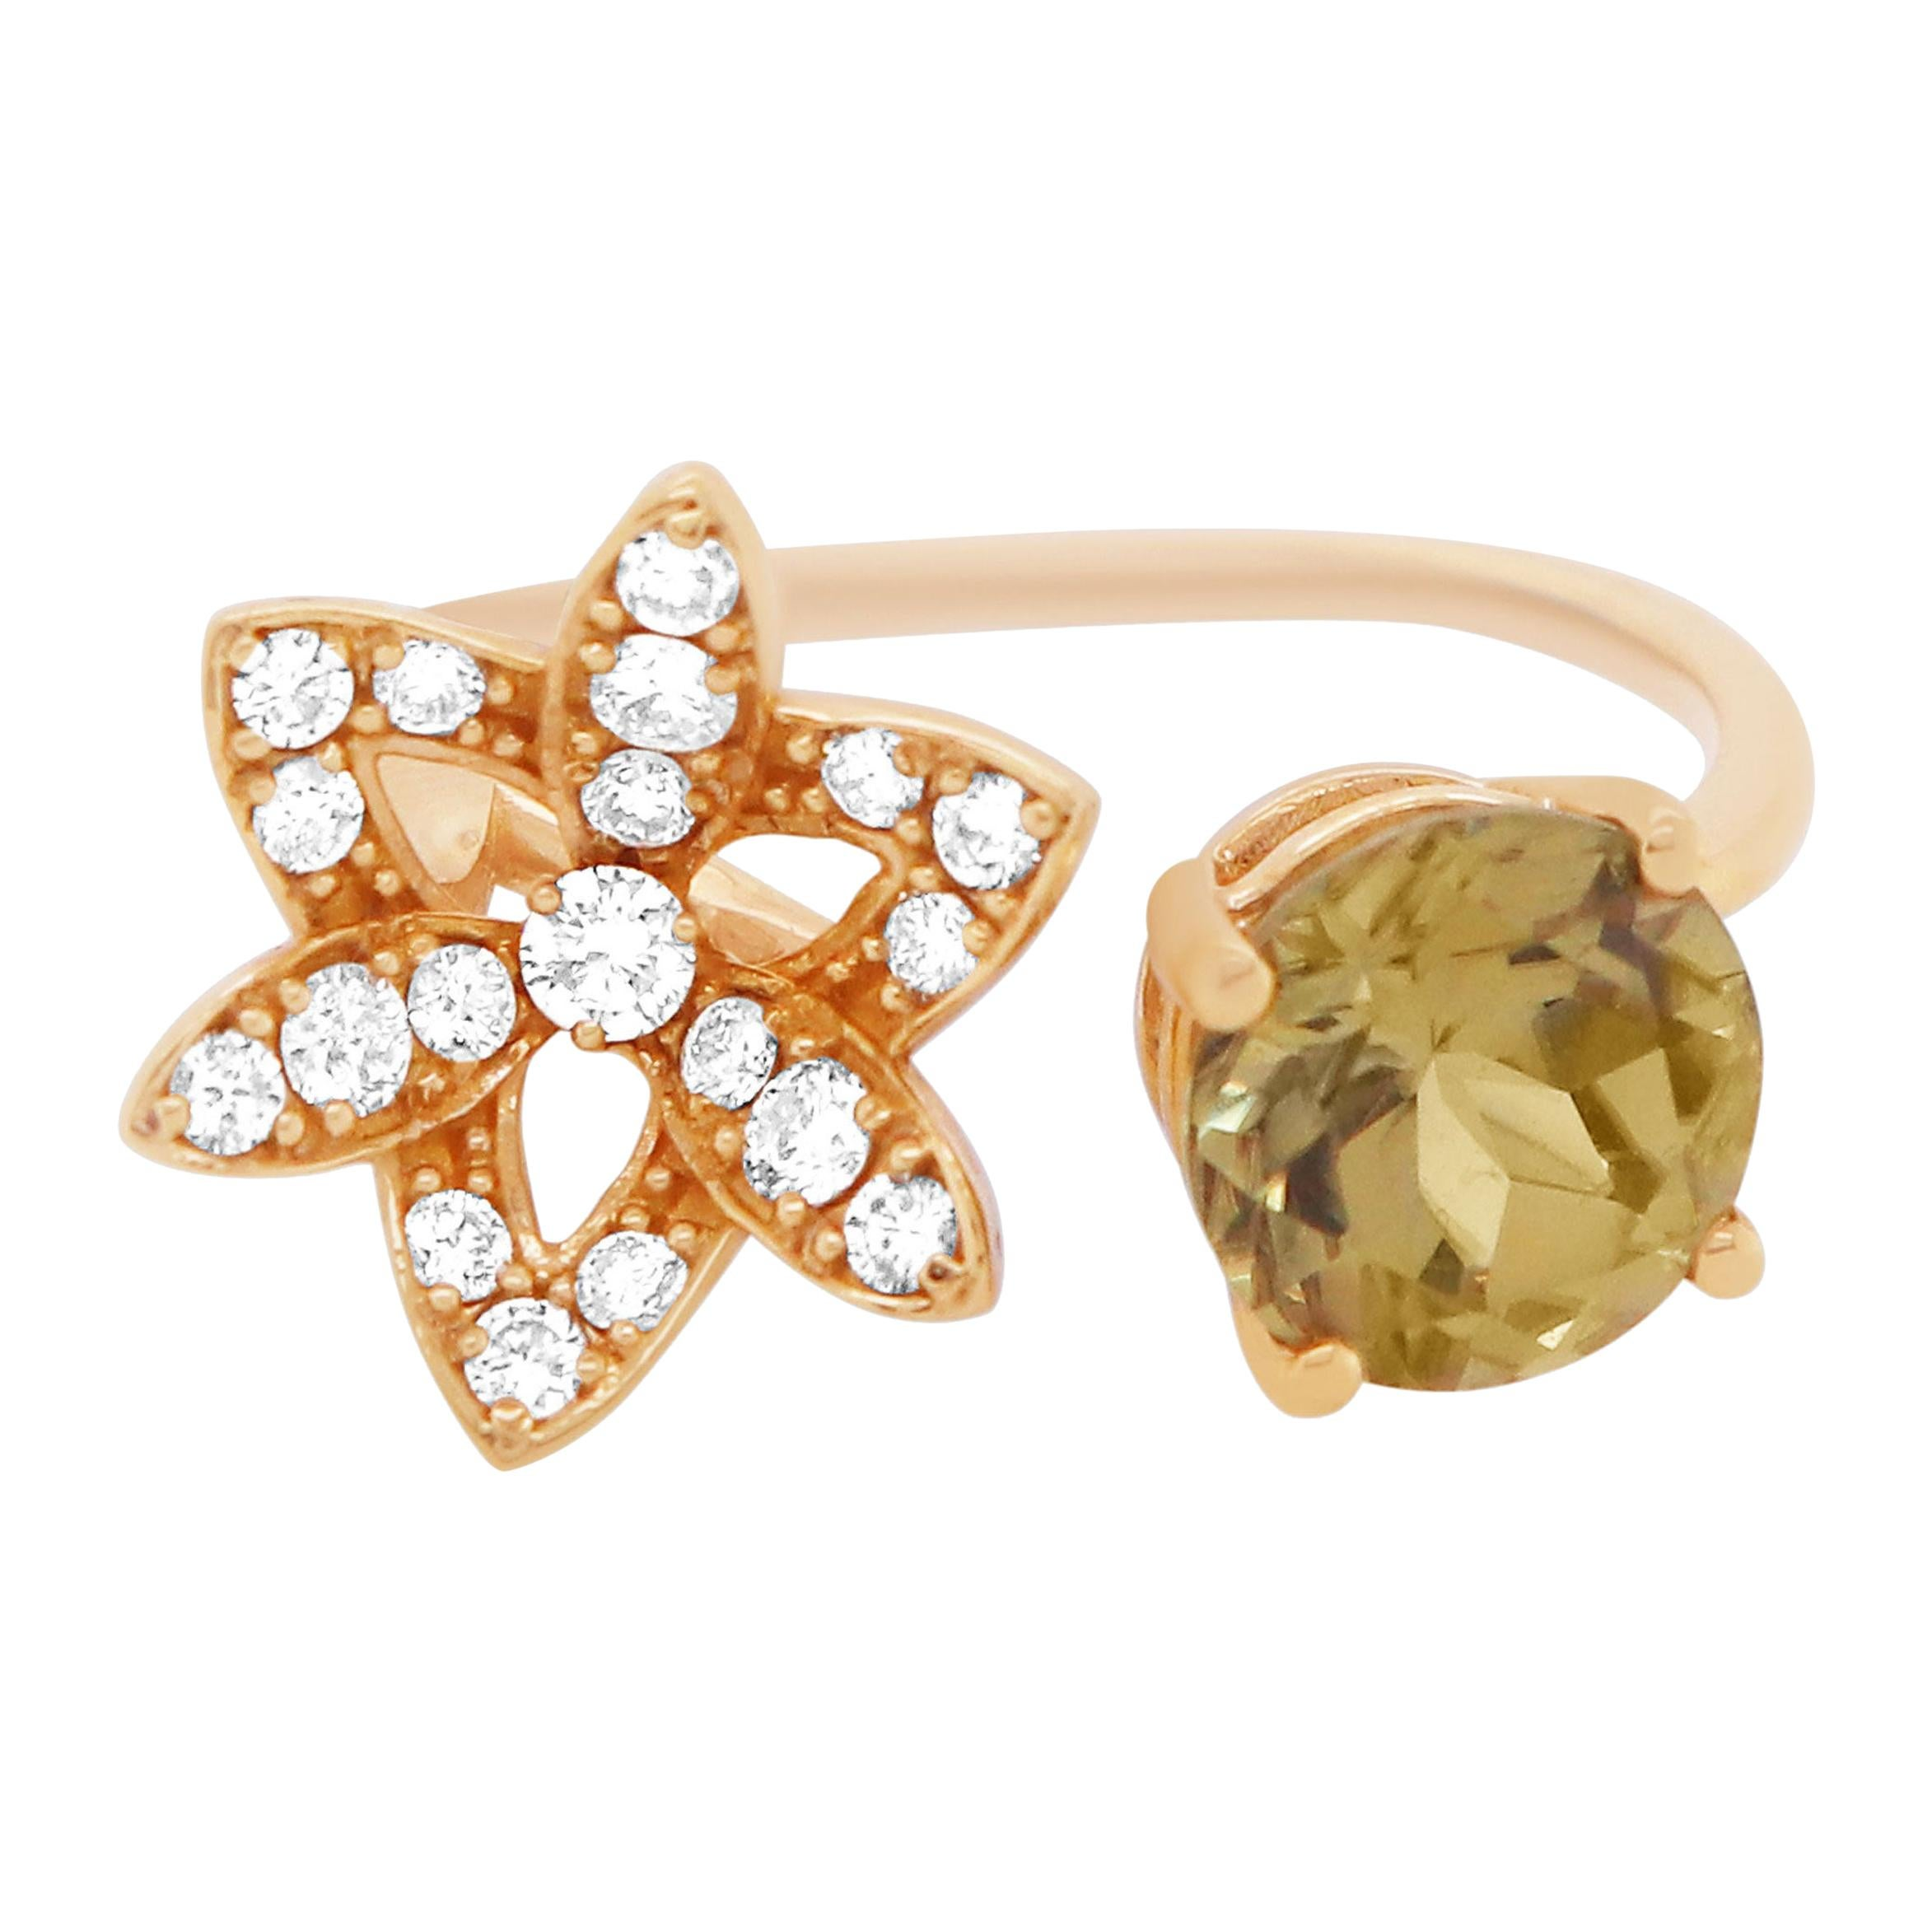 2.37 Carat Natural Color Changing Diaspore and Diamond Flower Toi et Moi Ring